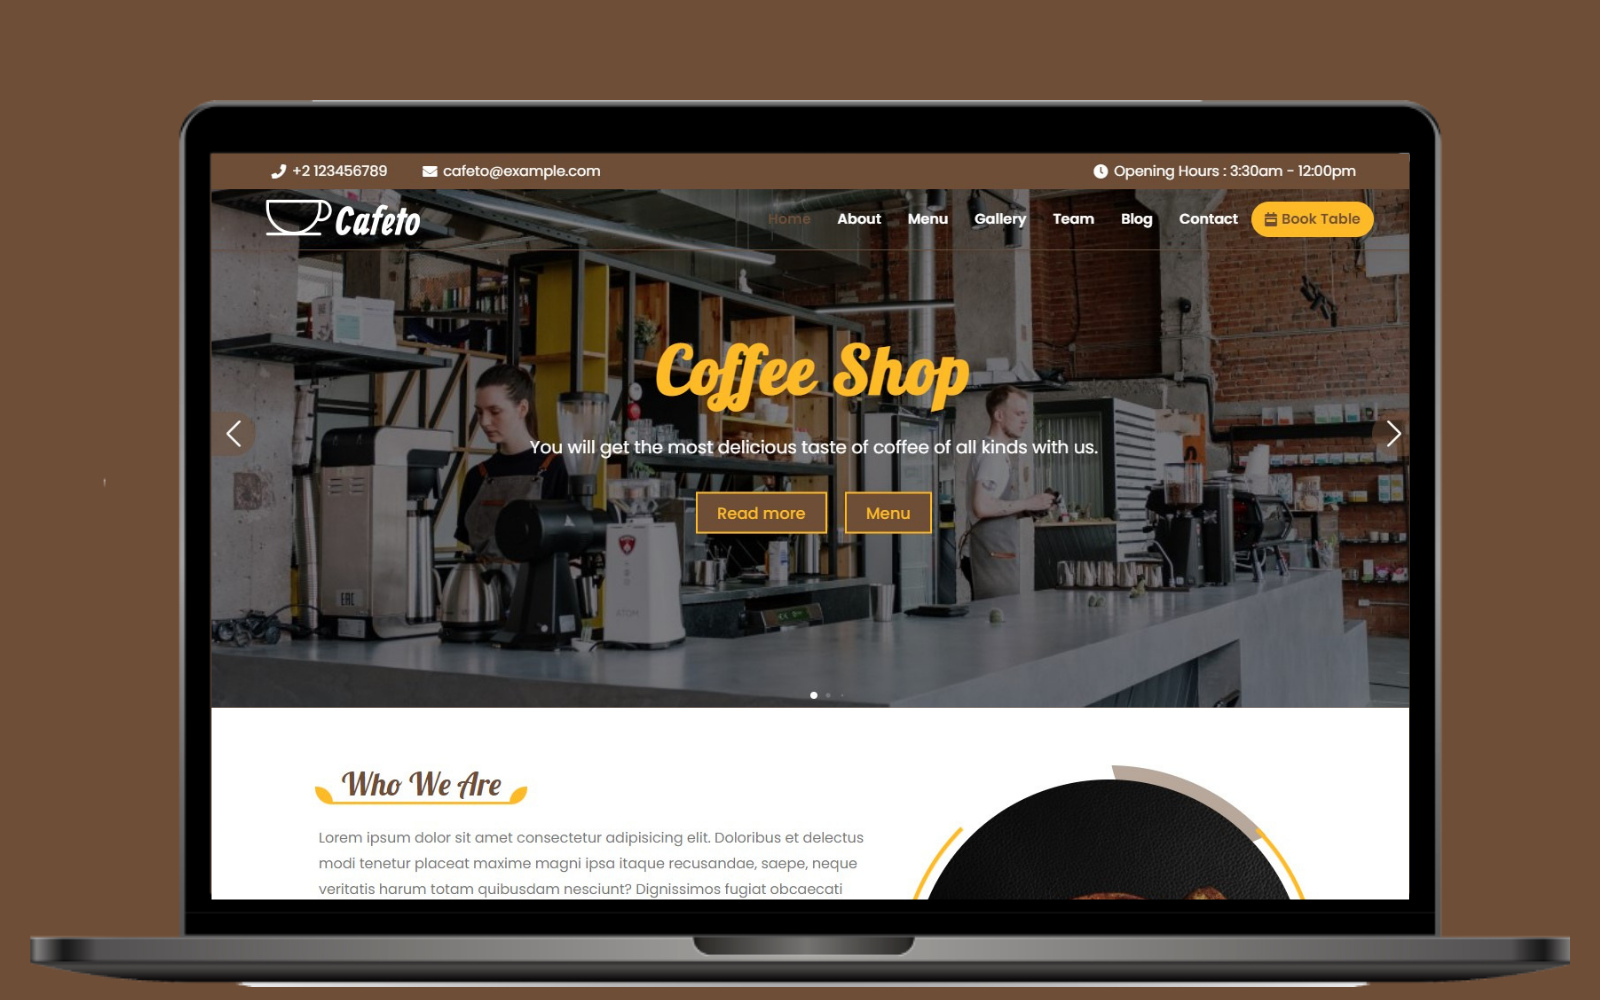 Cafeto - Cafe & Coffee Shop Landing Page Template